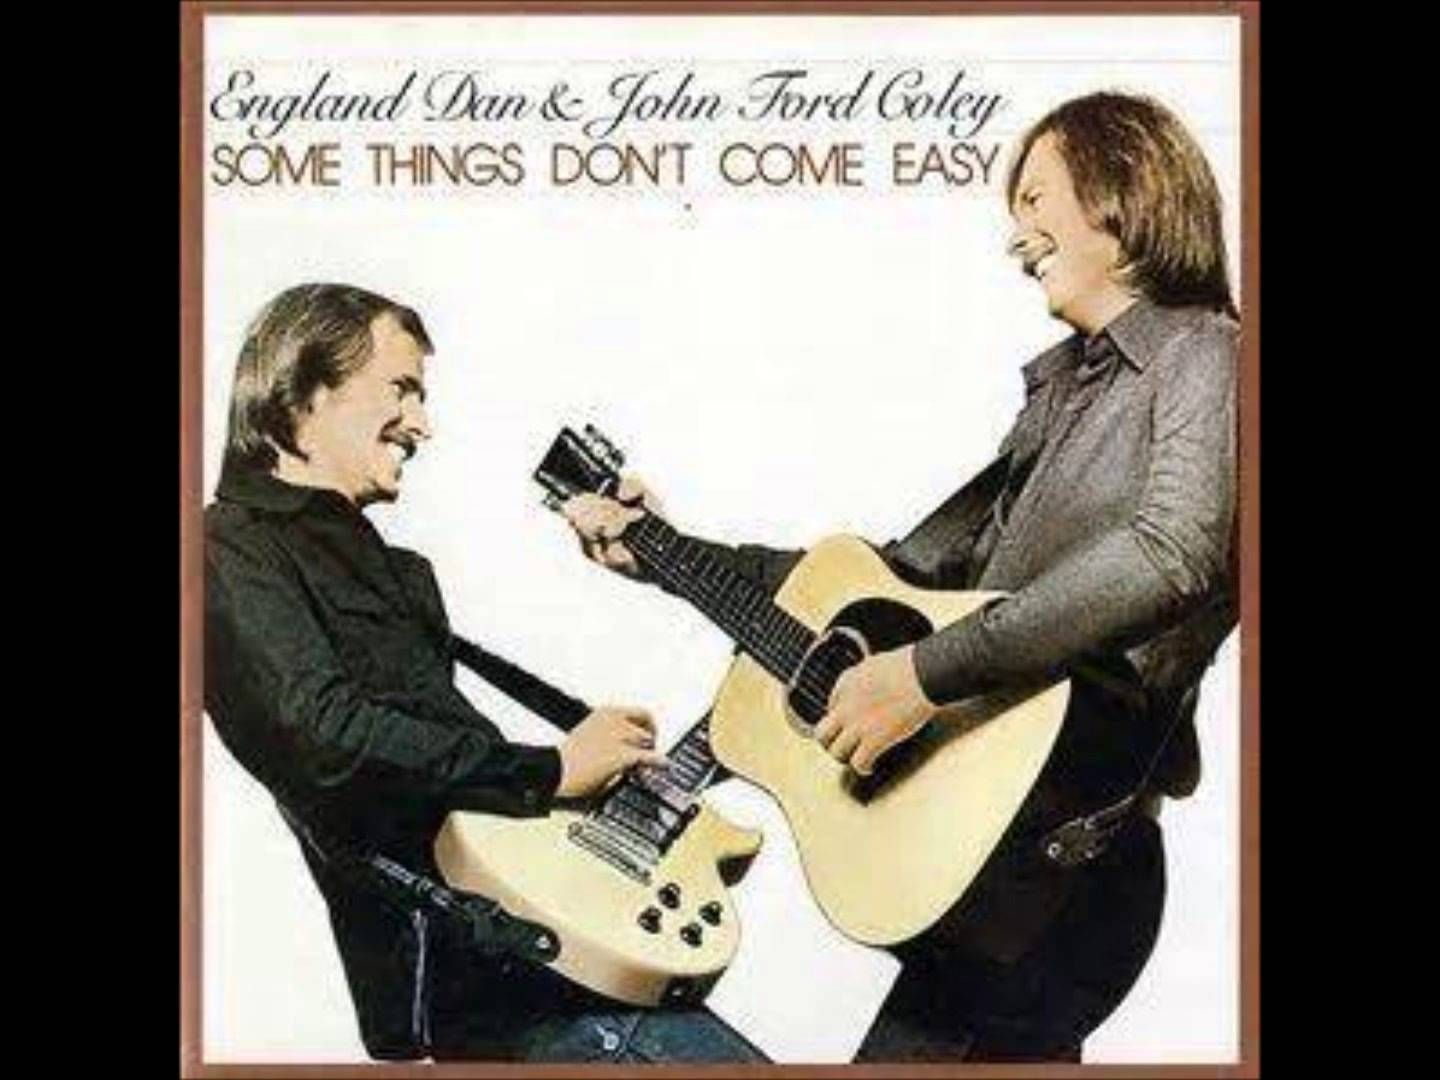 England dan john ford coley we ll never have to say goodbye again